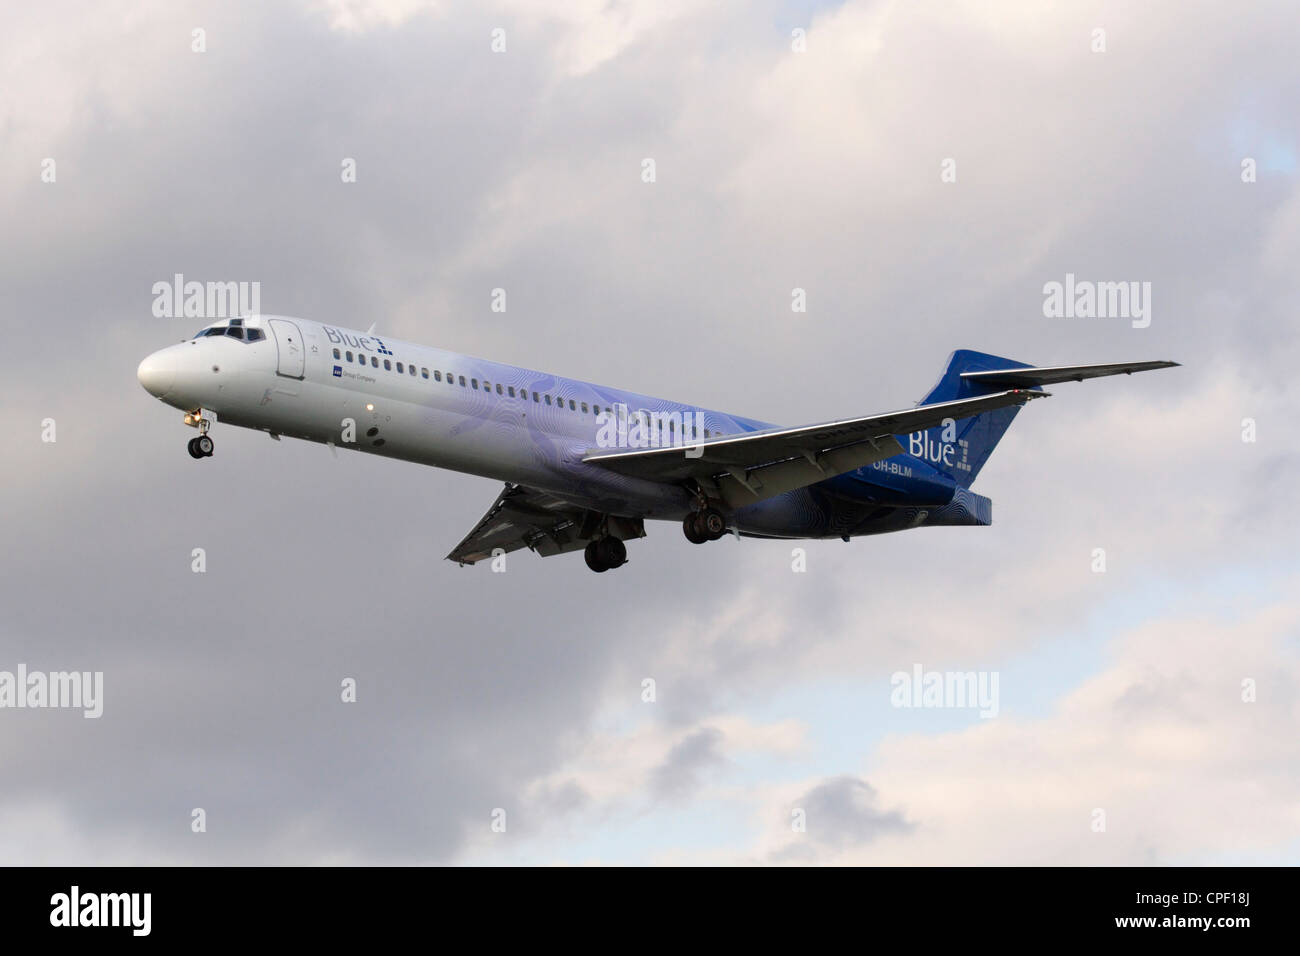 Blue1 Boeing 717-200 airliner on approach - Stock Image